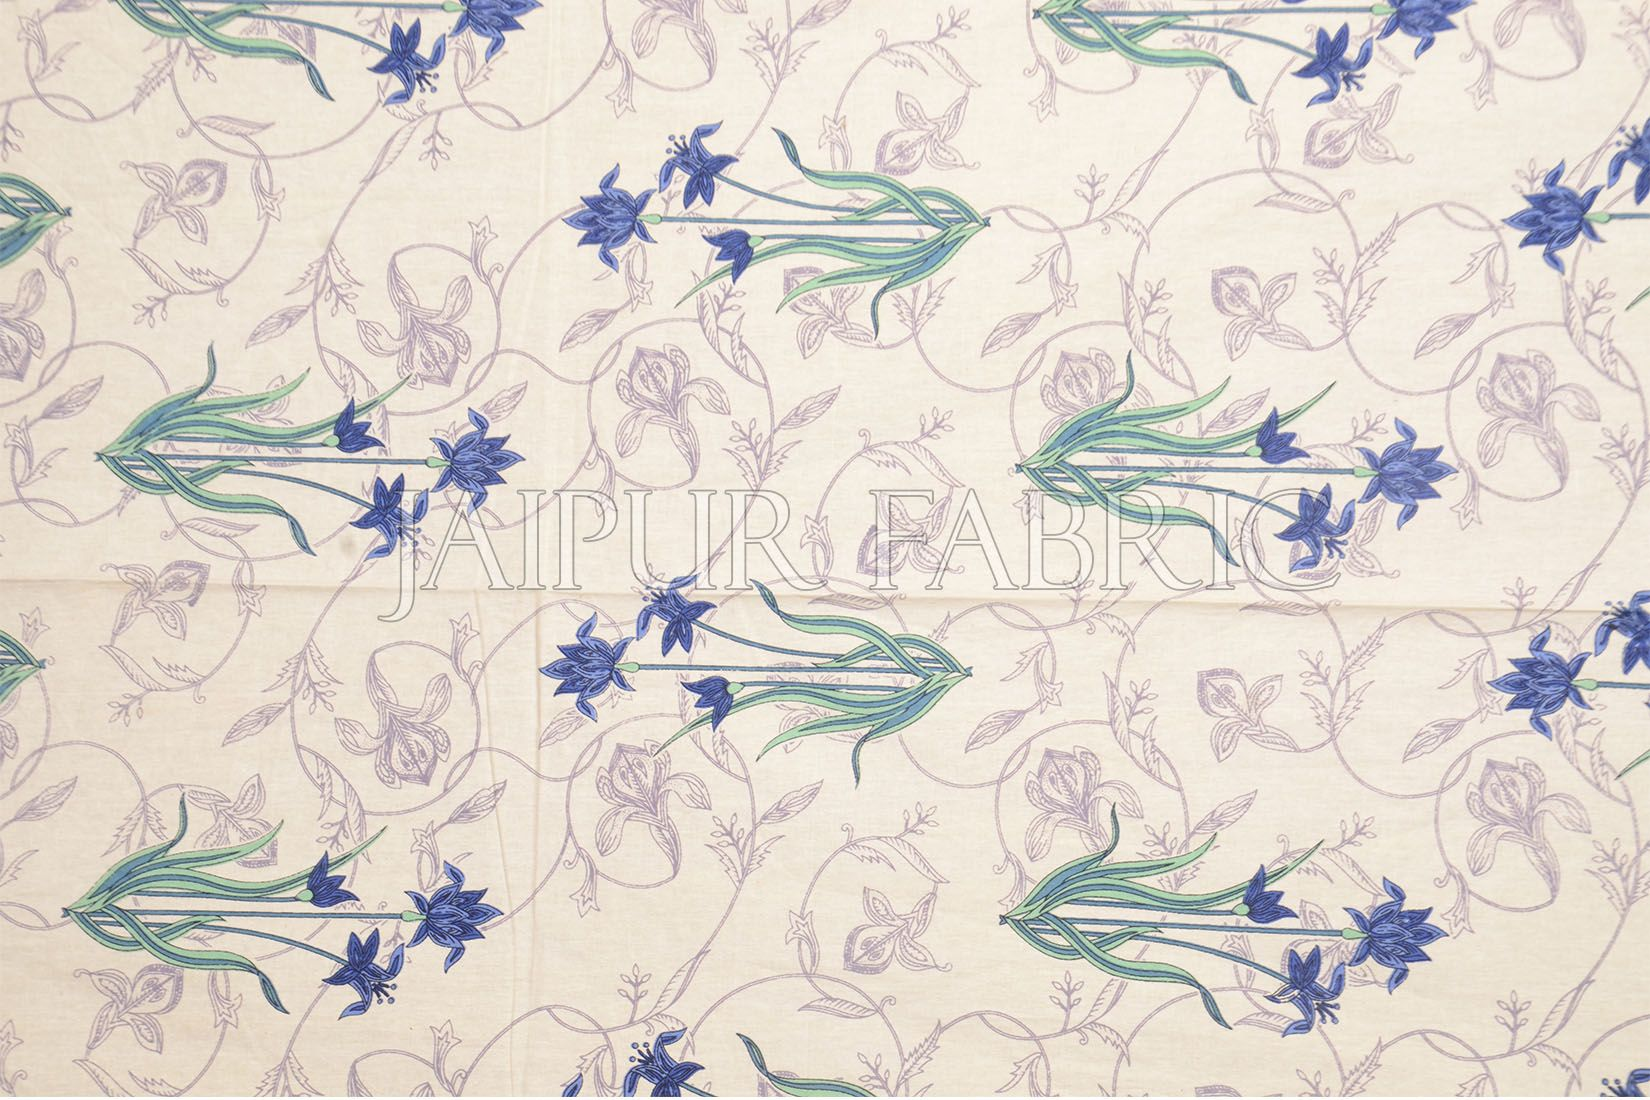 Blue Border Lotus Floral Printed Cotton Single Bed Sheet